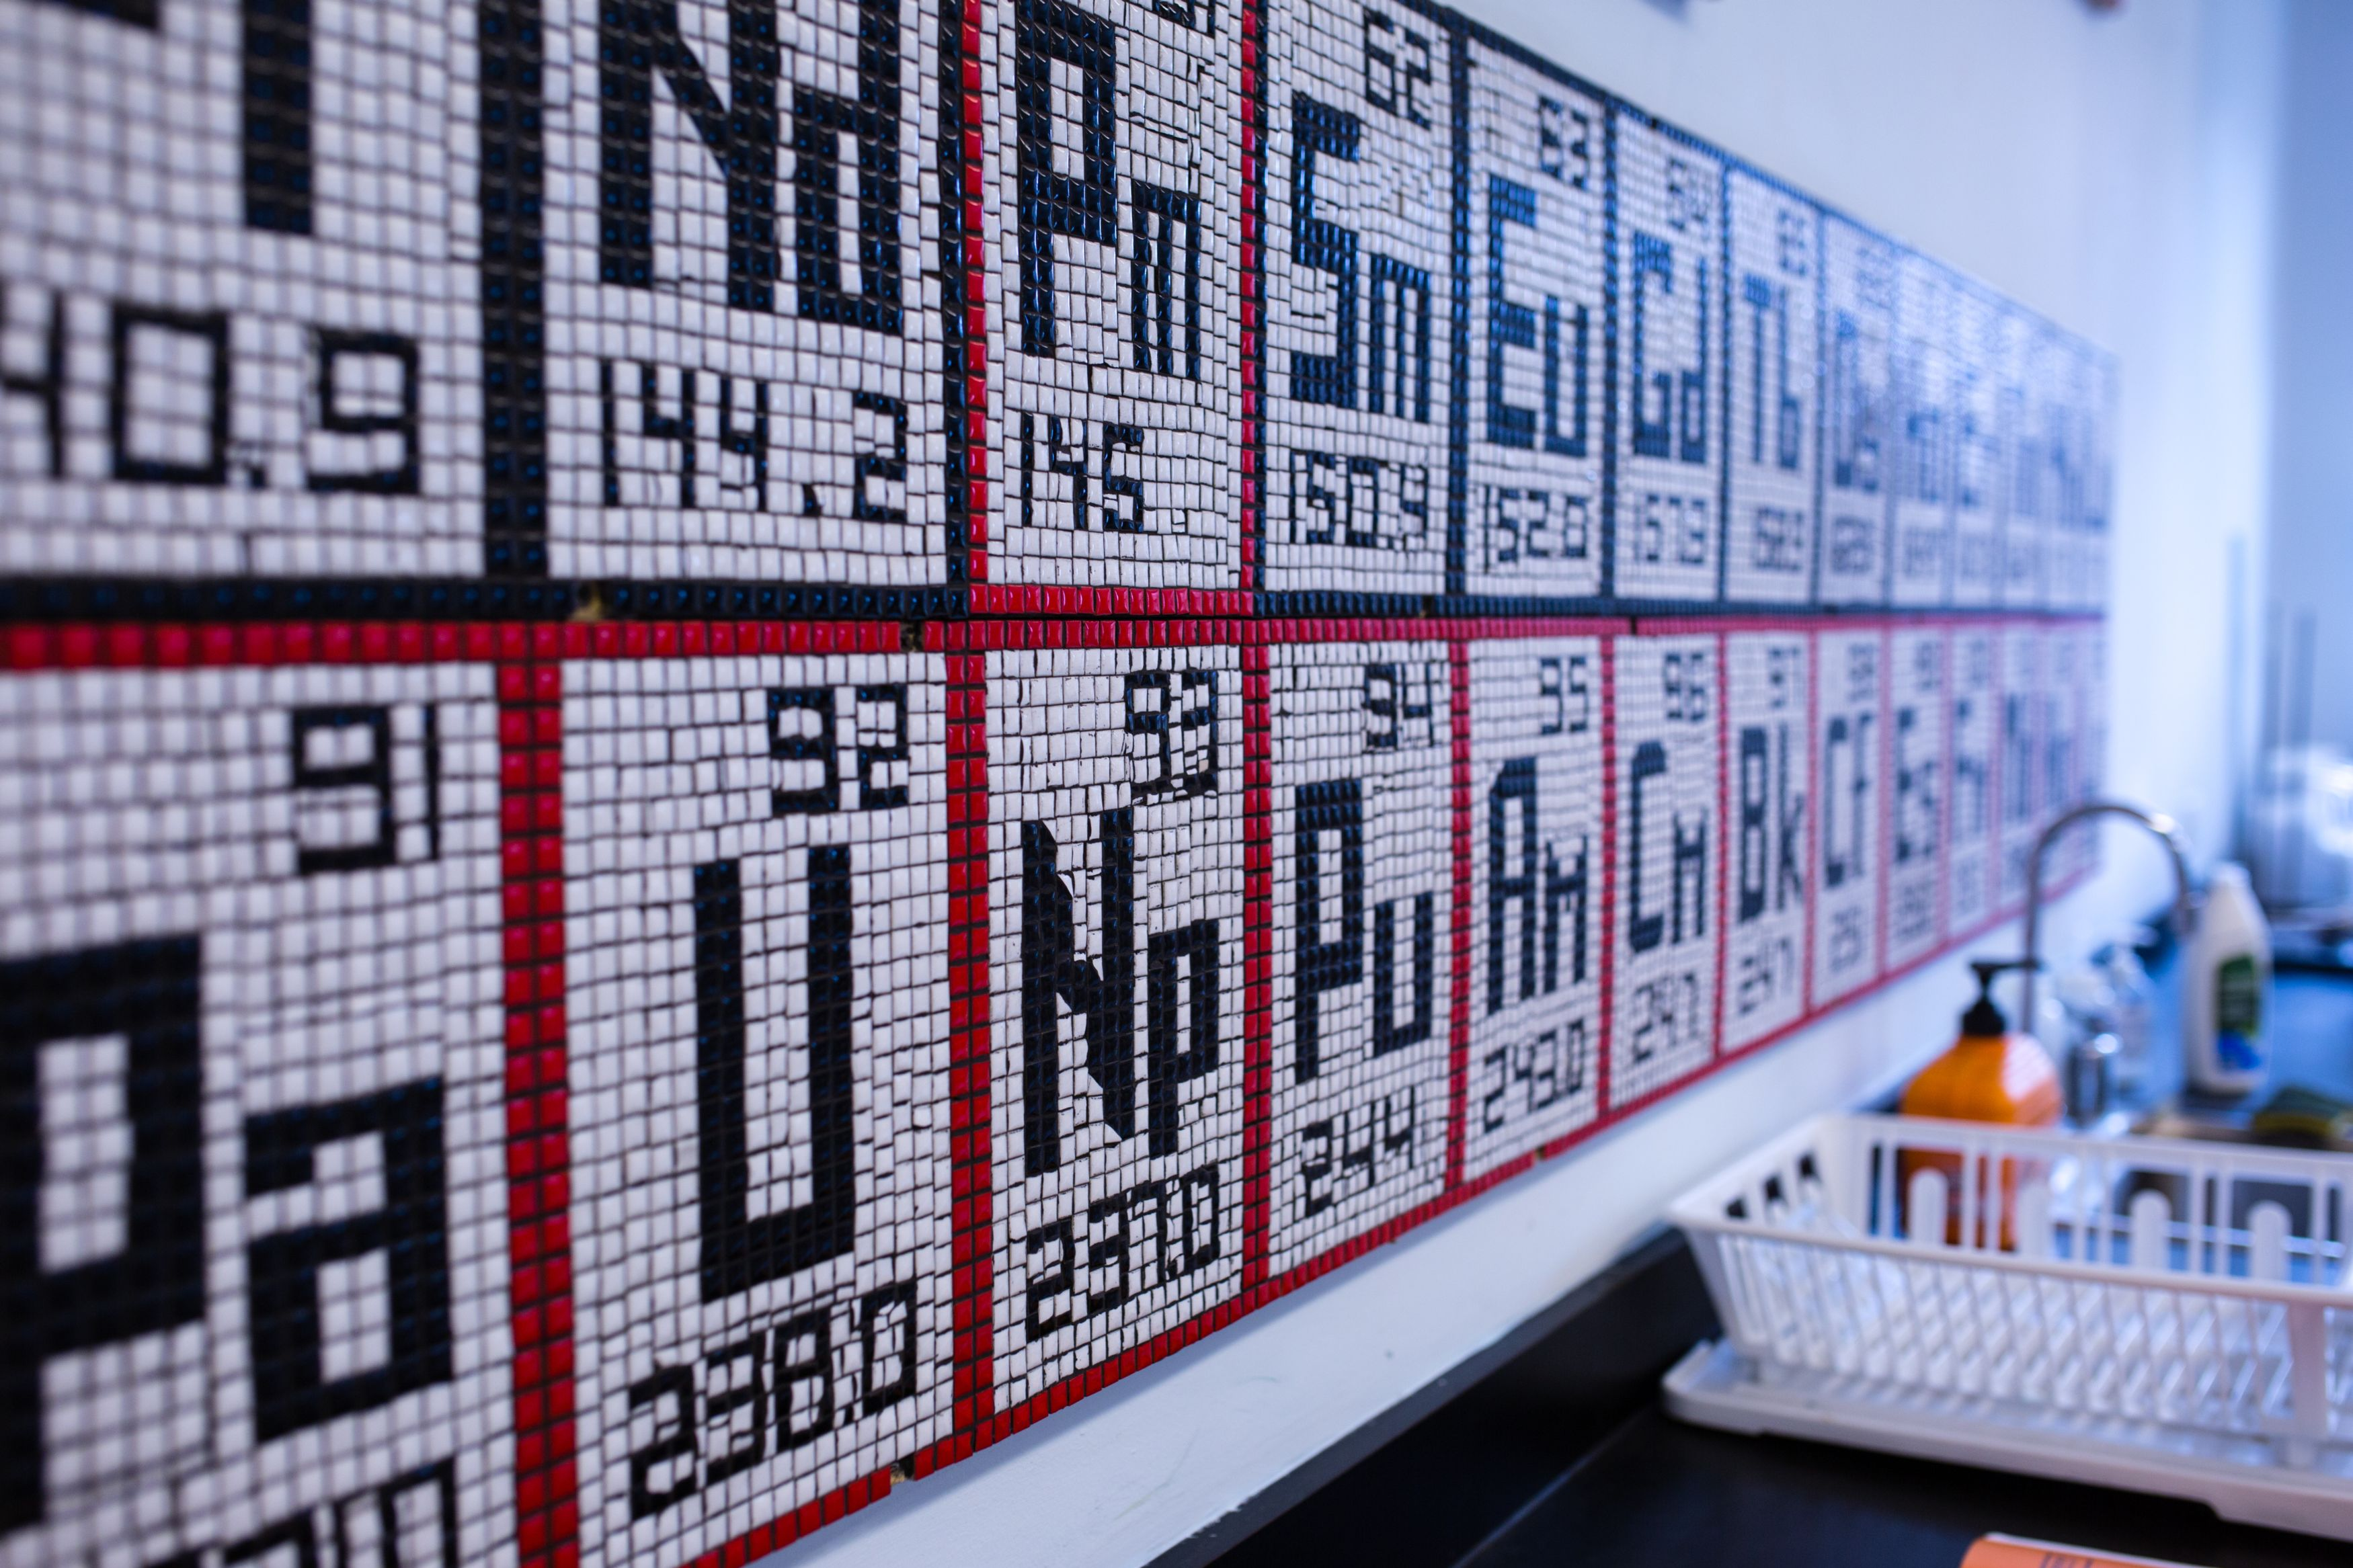 Mosaic Periodic Table